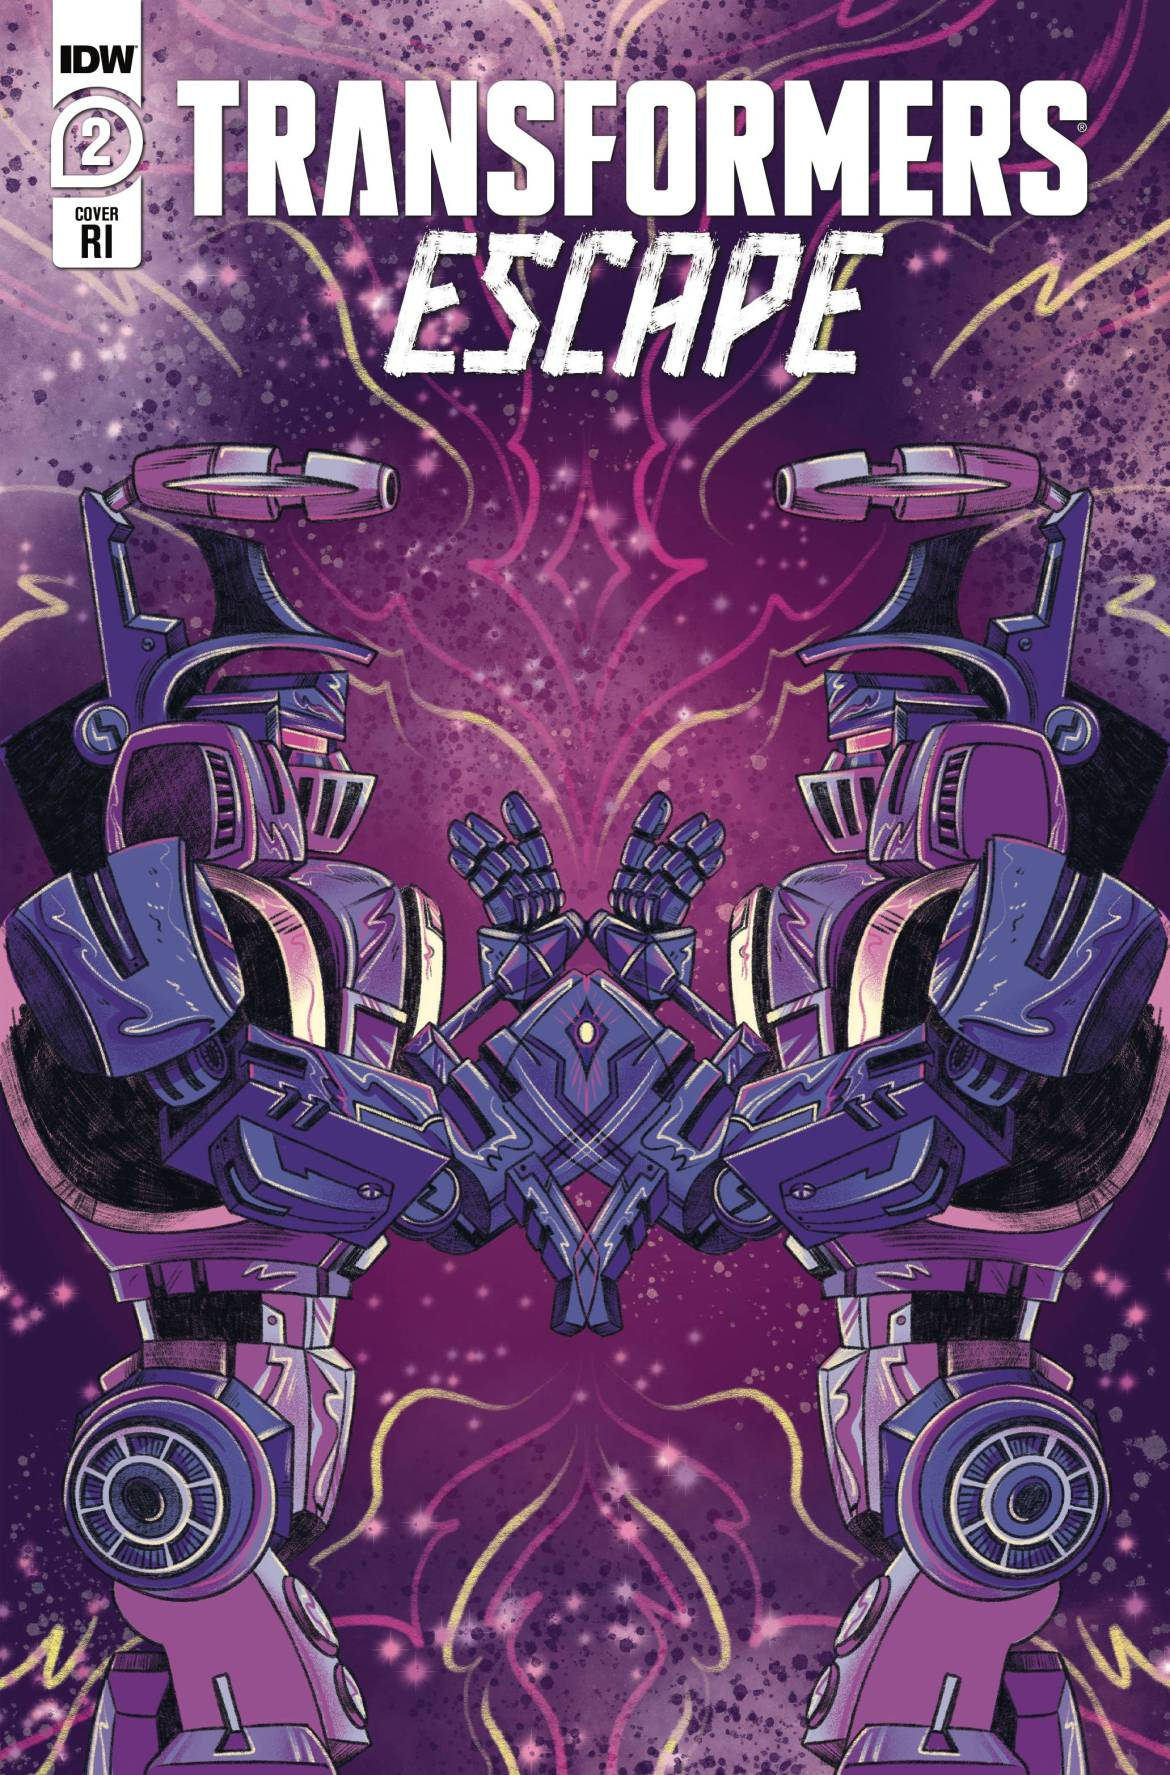 STL173344 ComicList: IDW Publishing New Releases for 02/10/2021